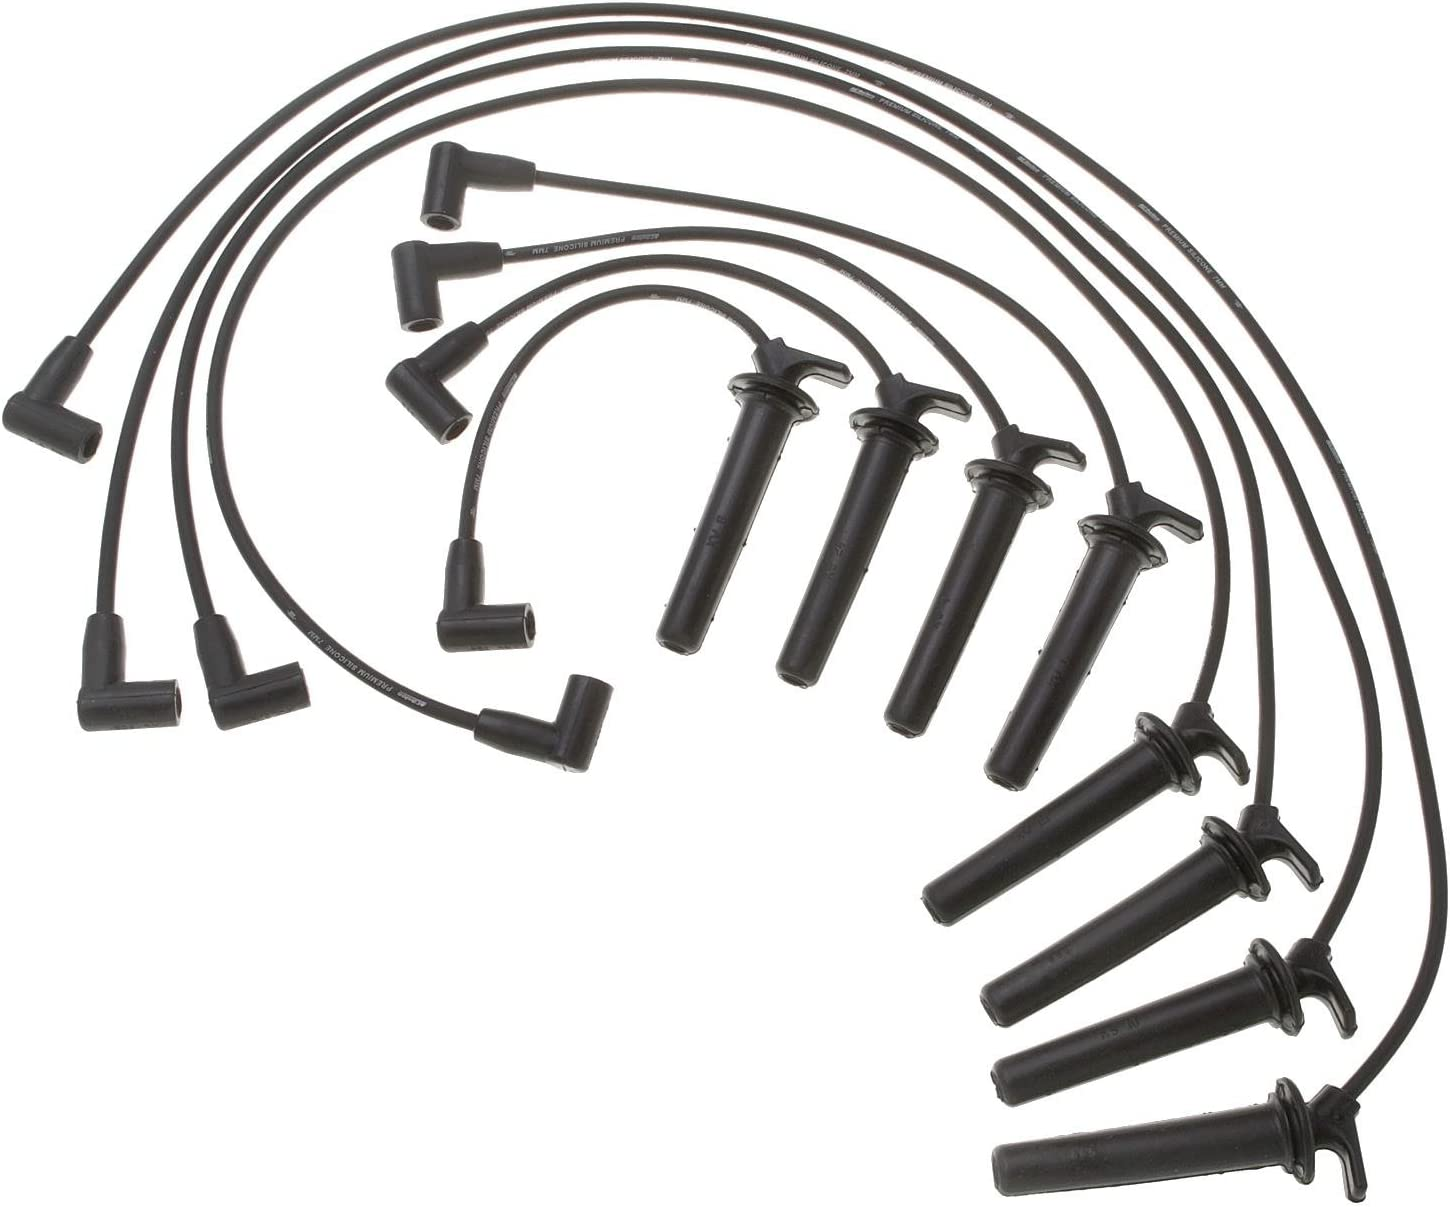 ACDelco Max 88% OFF Professional outlet 9748N Spark Wire Set Plug